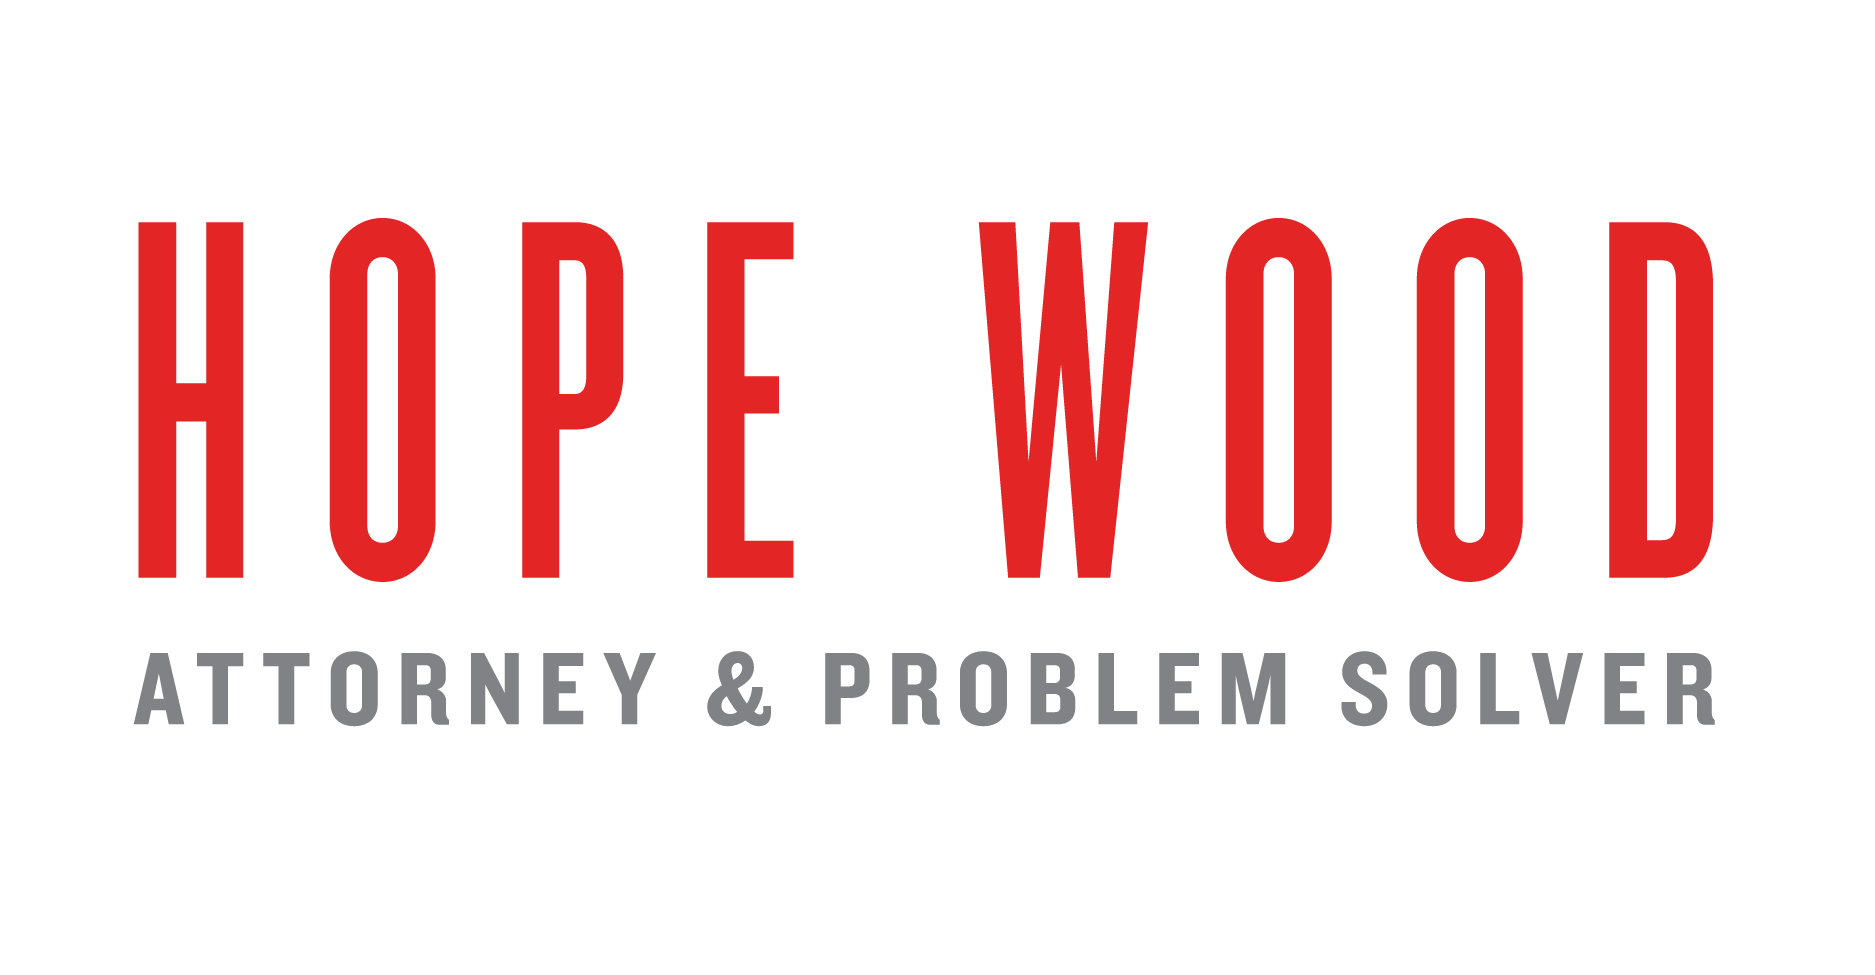 HopeWood_logo 1 RedGray_HR.png